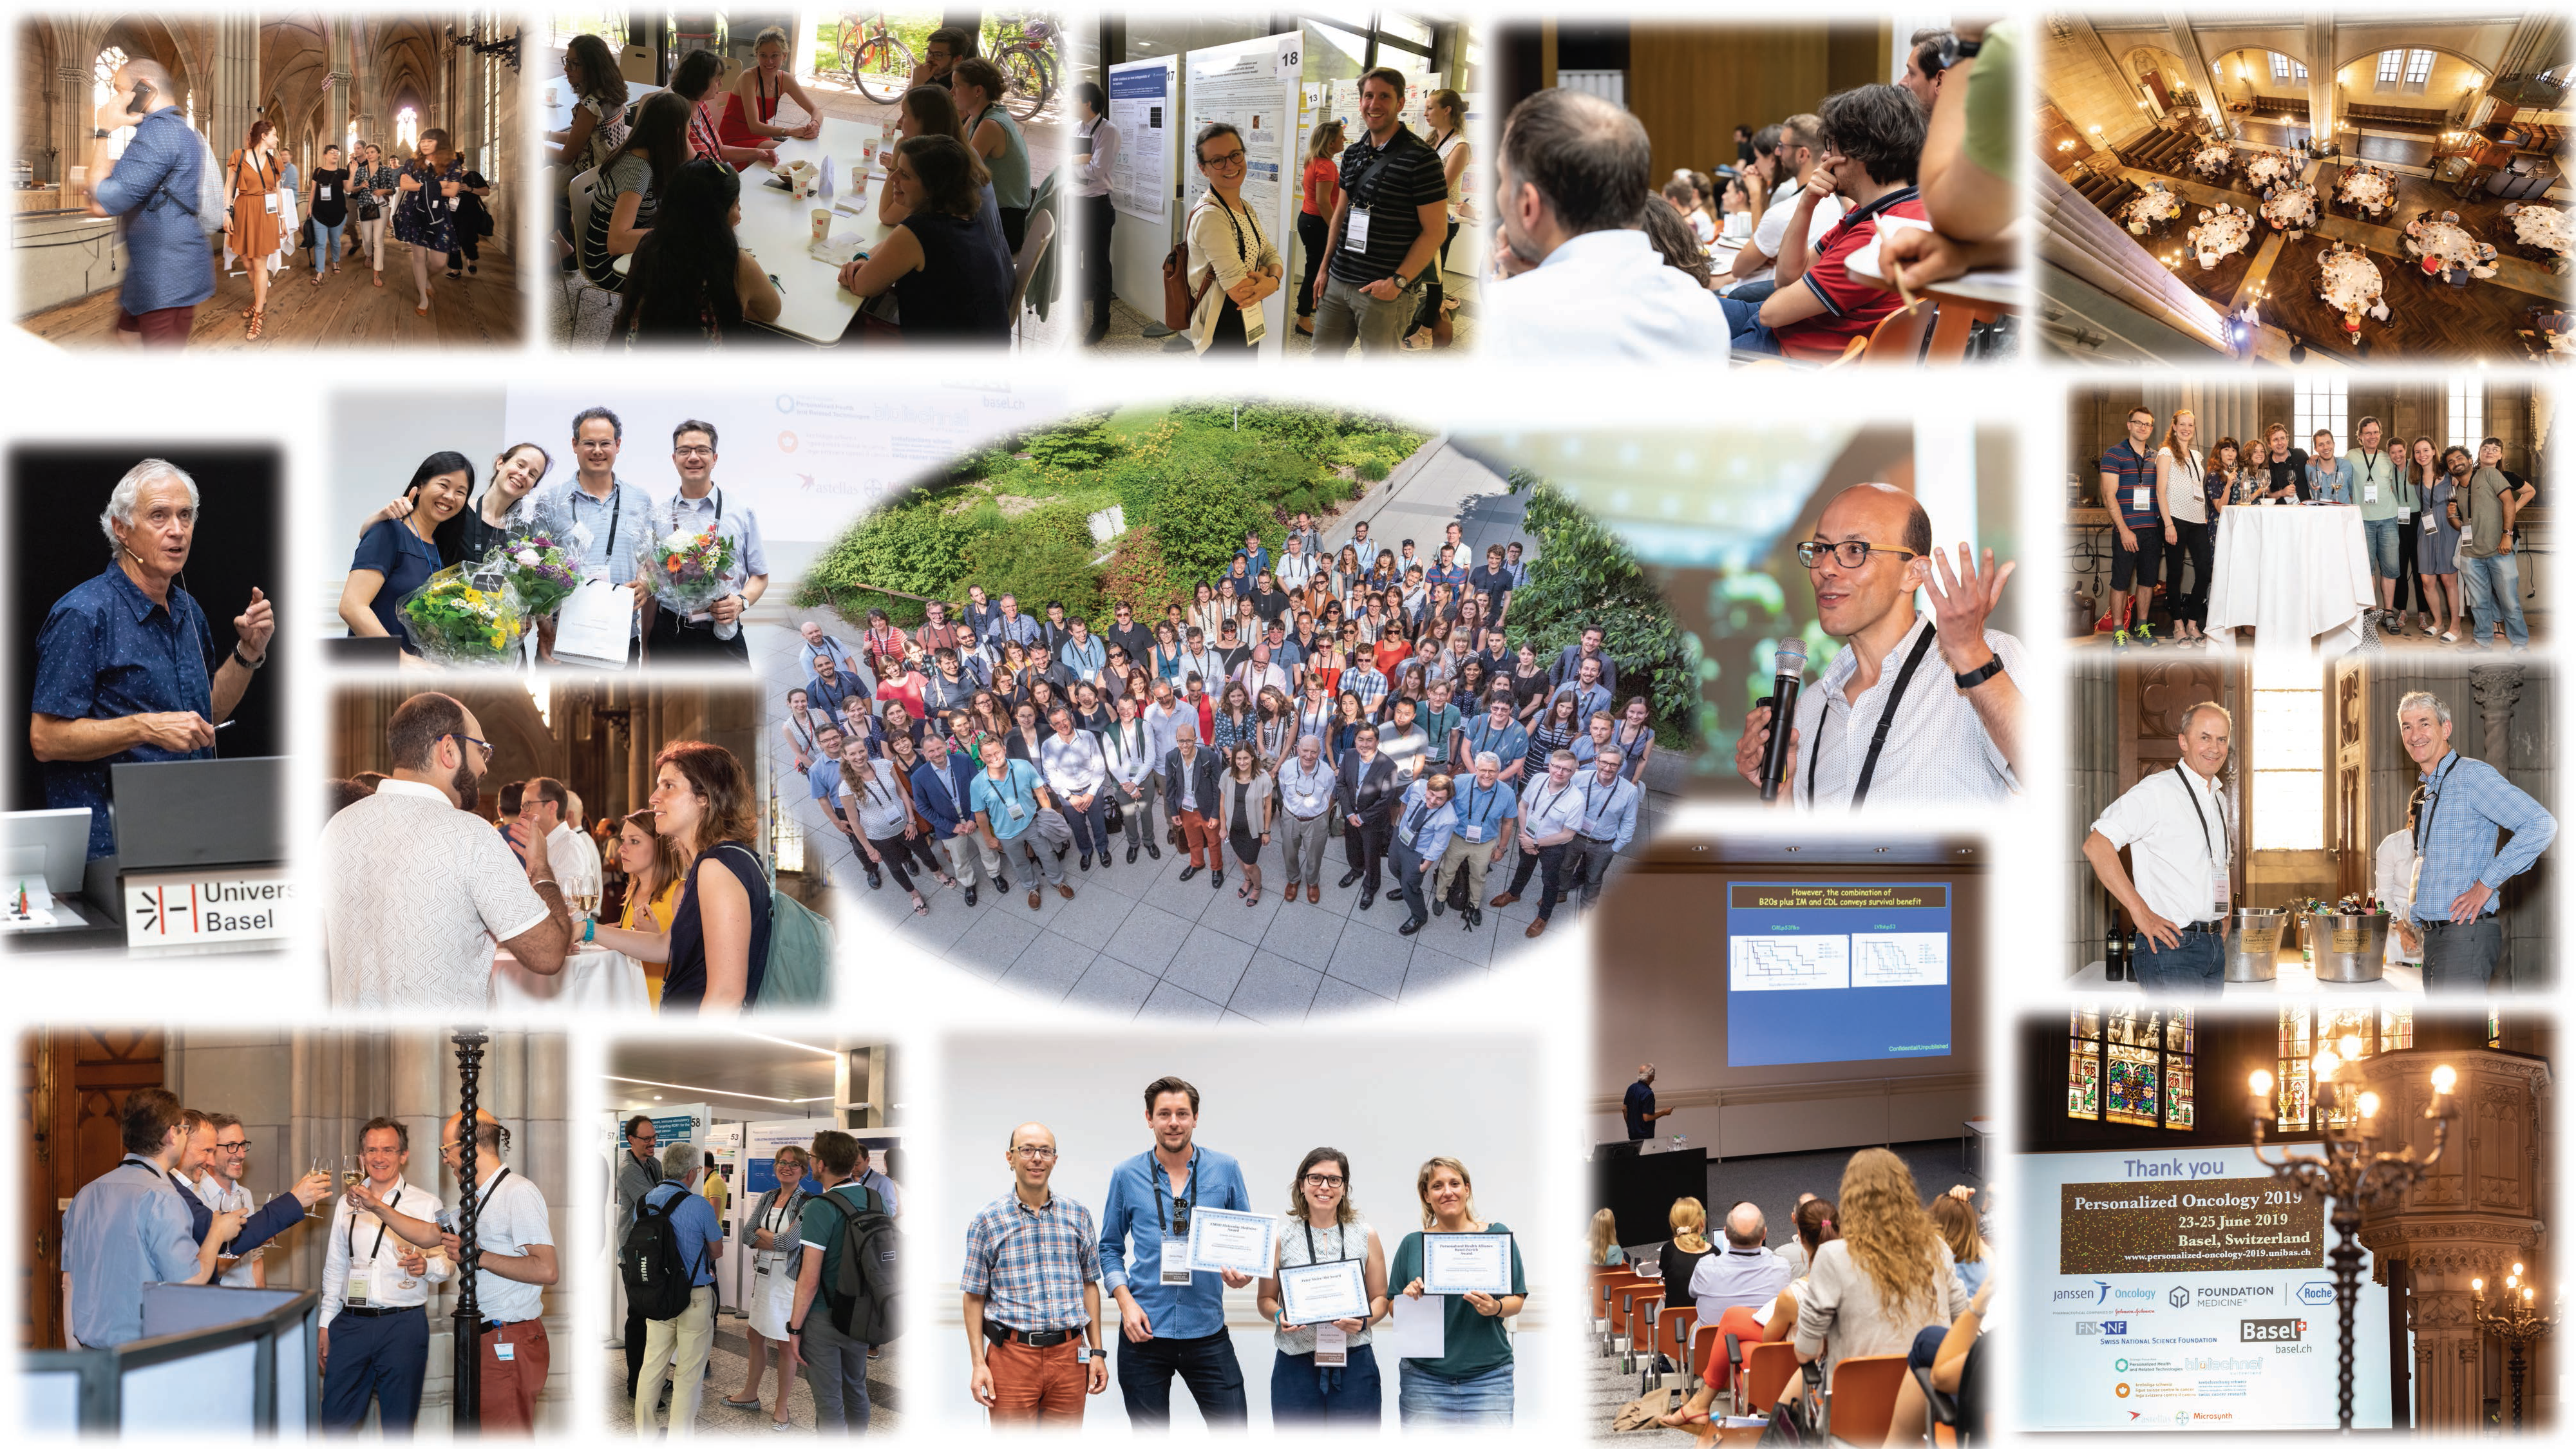 Collage of selected Photos of Personalized Oncology Conference 2019